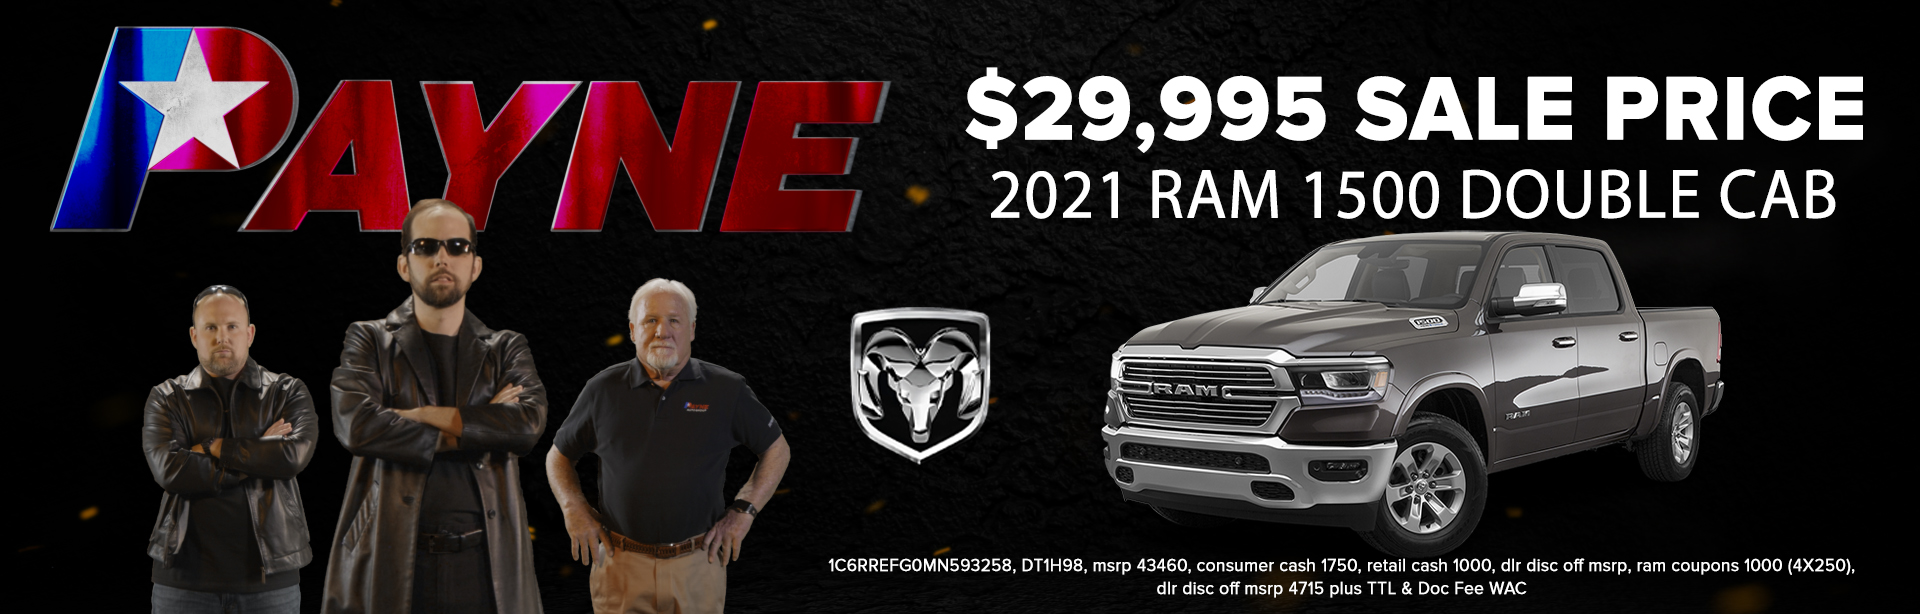 Get a 2021 RAM 1500 Double Cab for $29.995